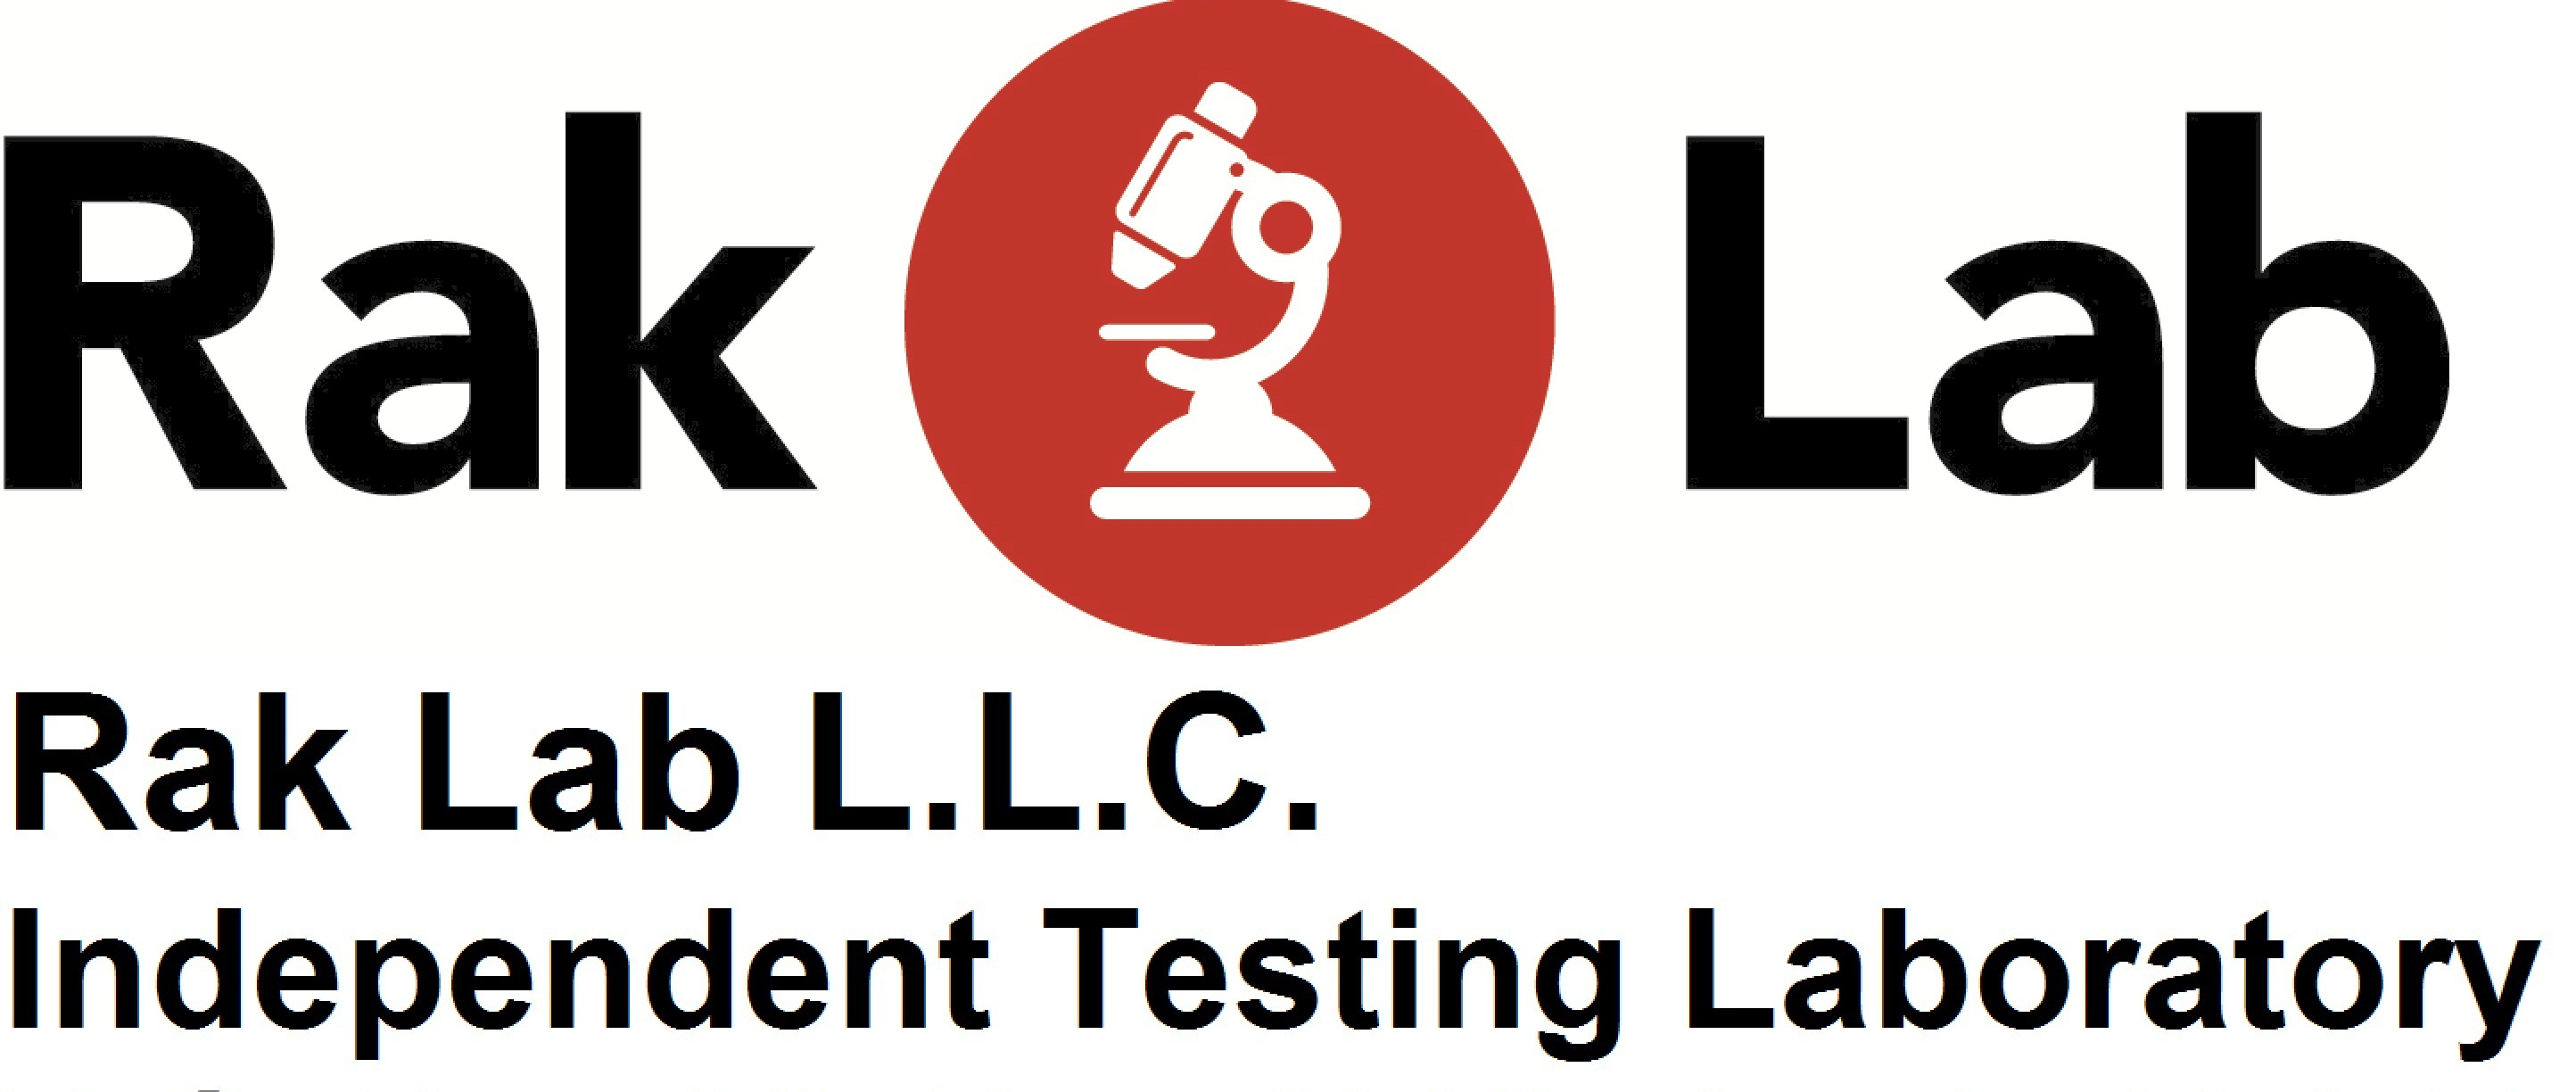 RAK Lab LLC - Laboratory